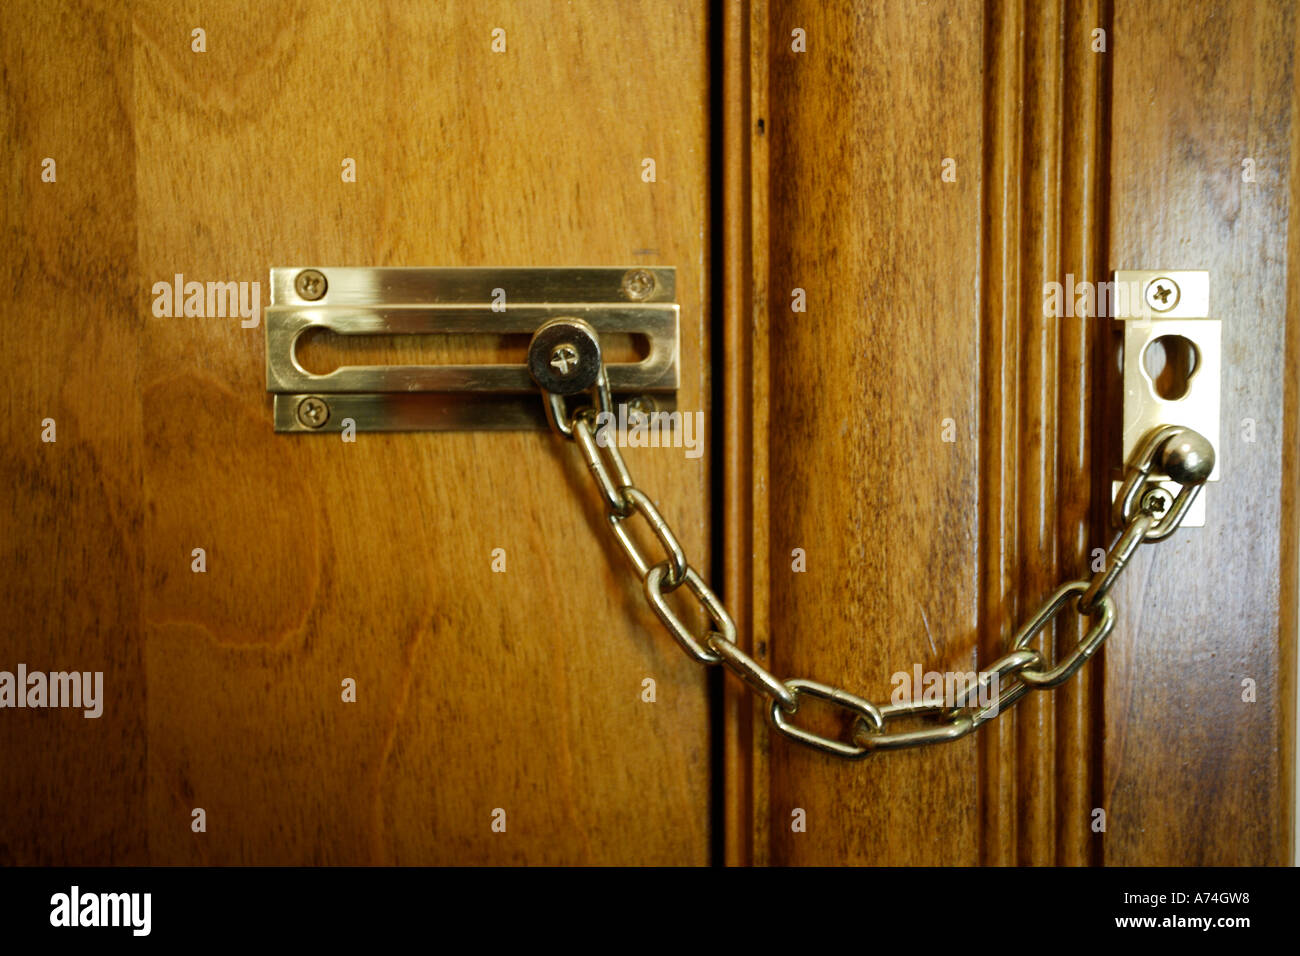 Locked Door with Chain Lock Stock Photo, Royalty Free Image ...